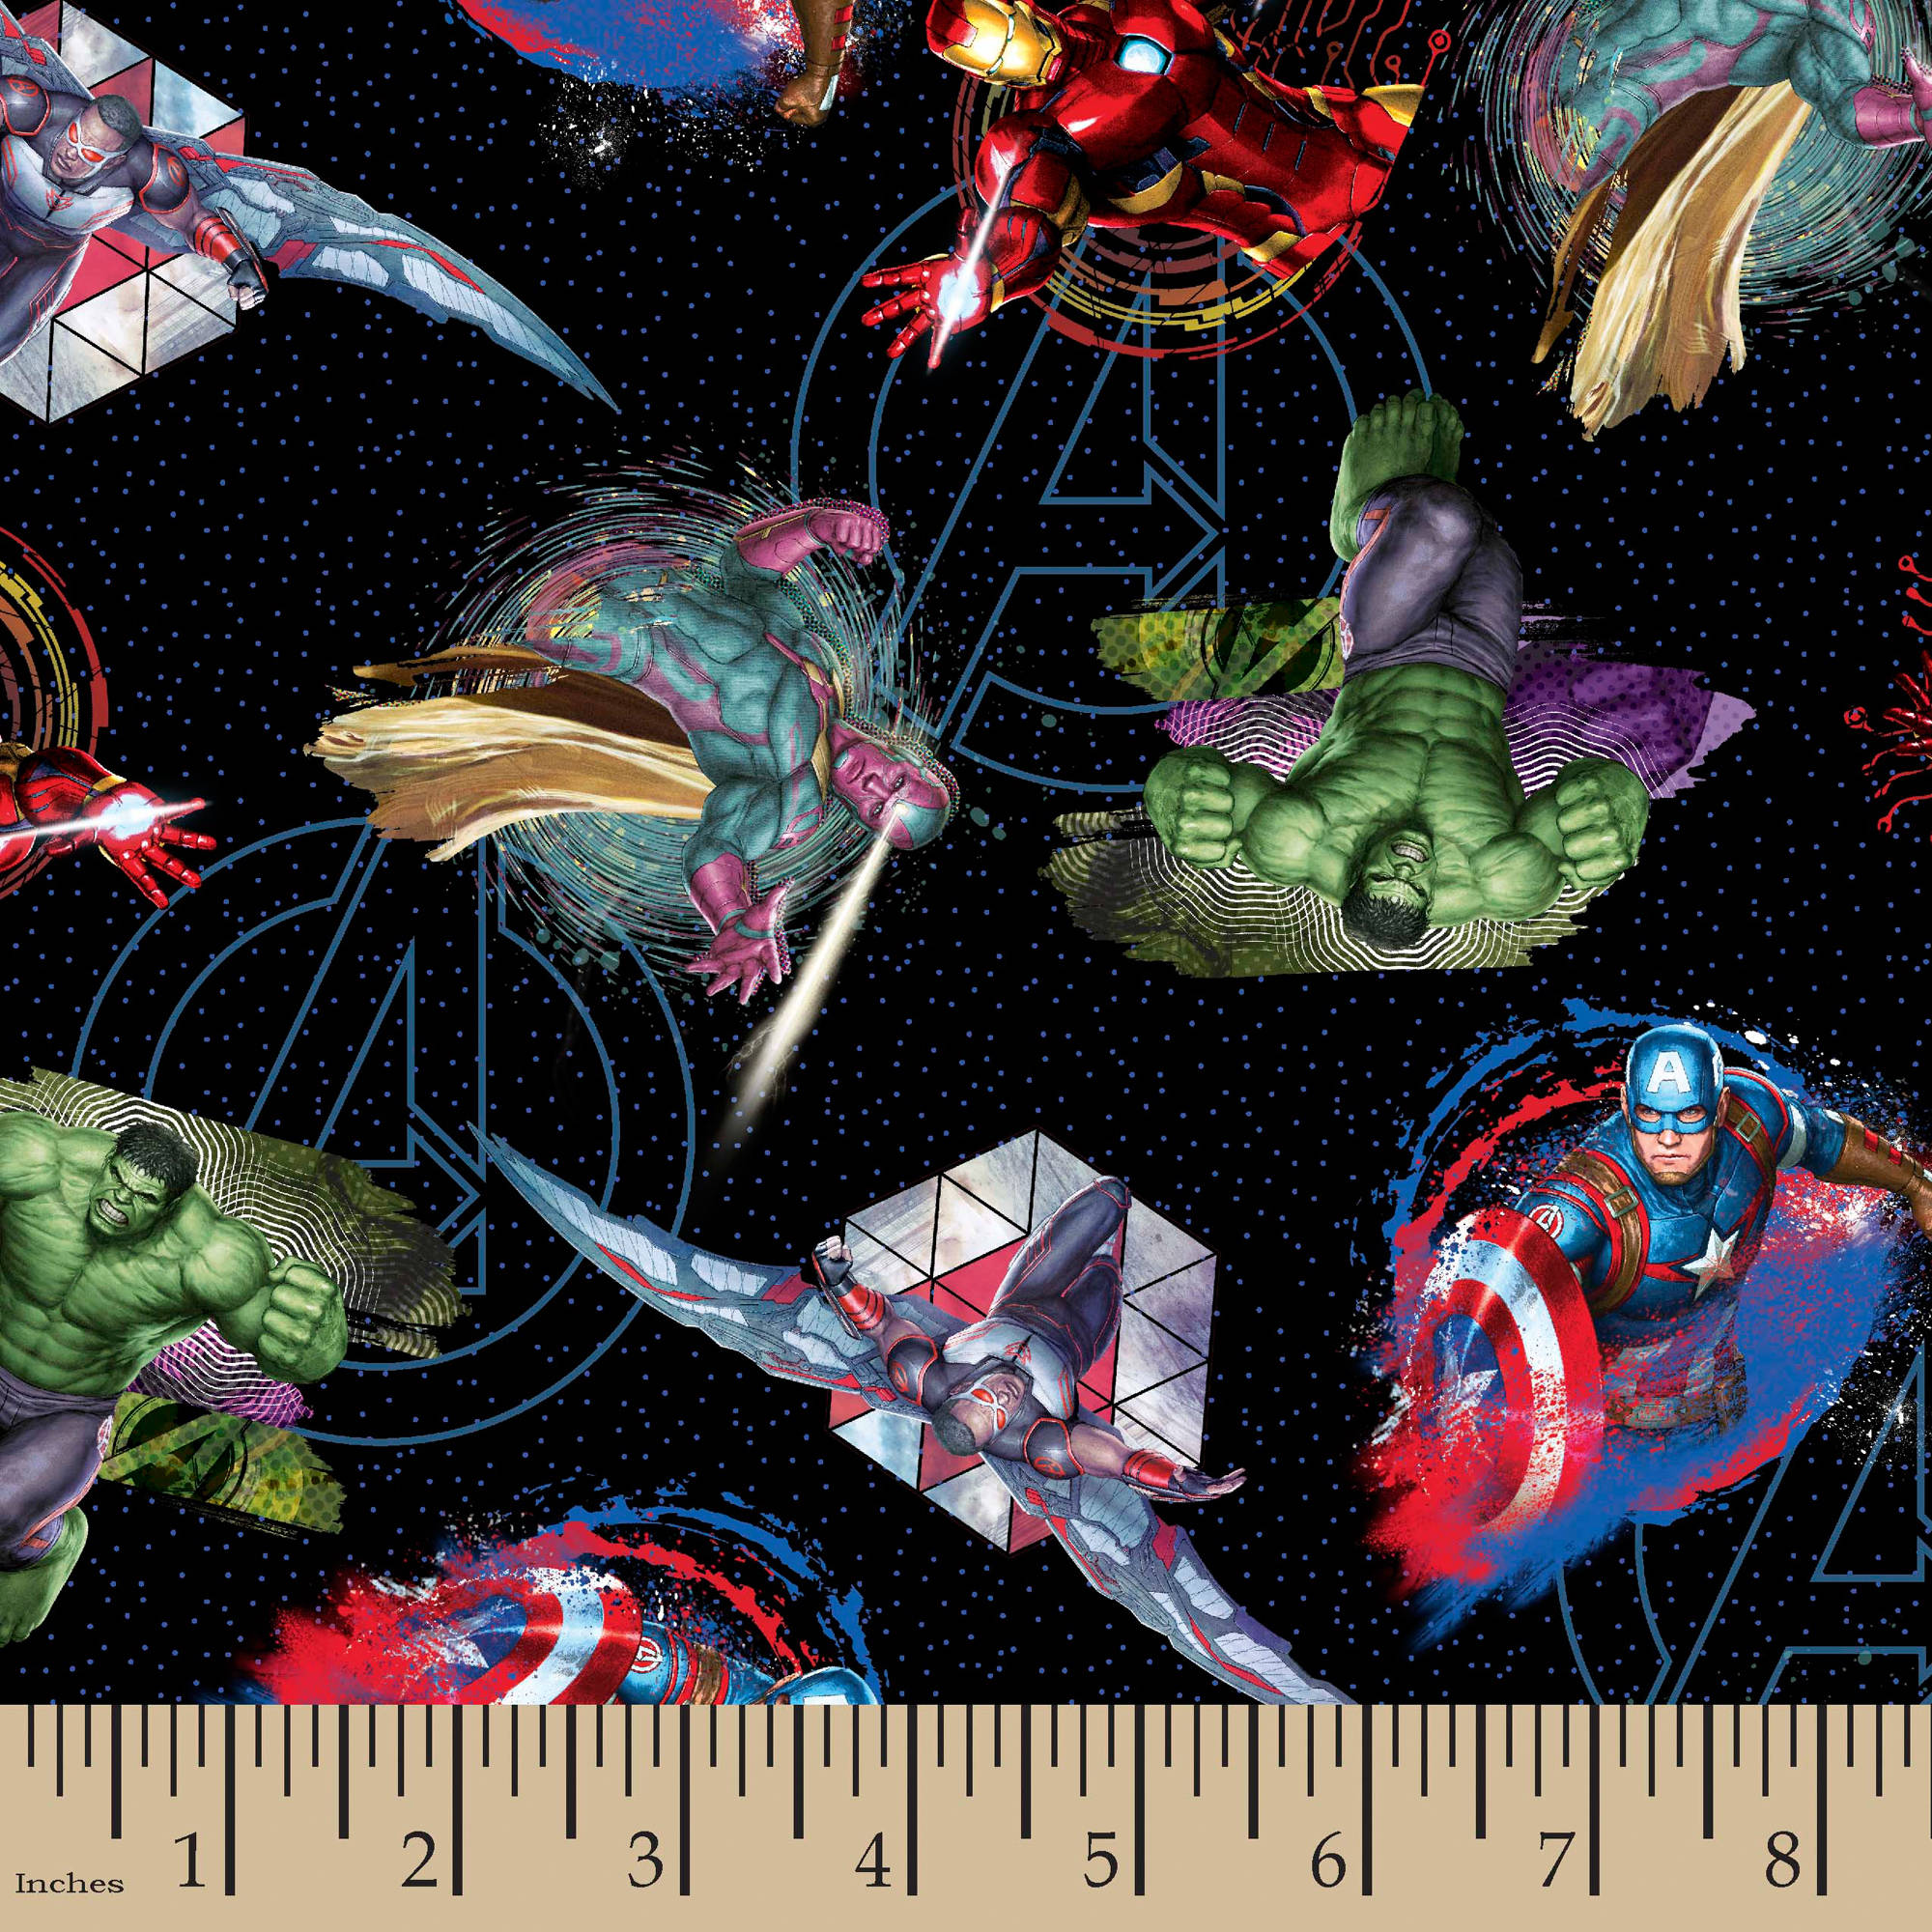 Marvel avengers badges multi colored 100 percent cotton 43 44w fabric by the yard walmart com